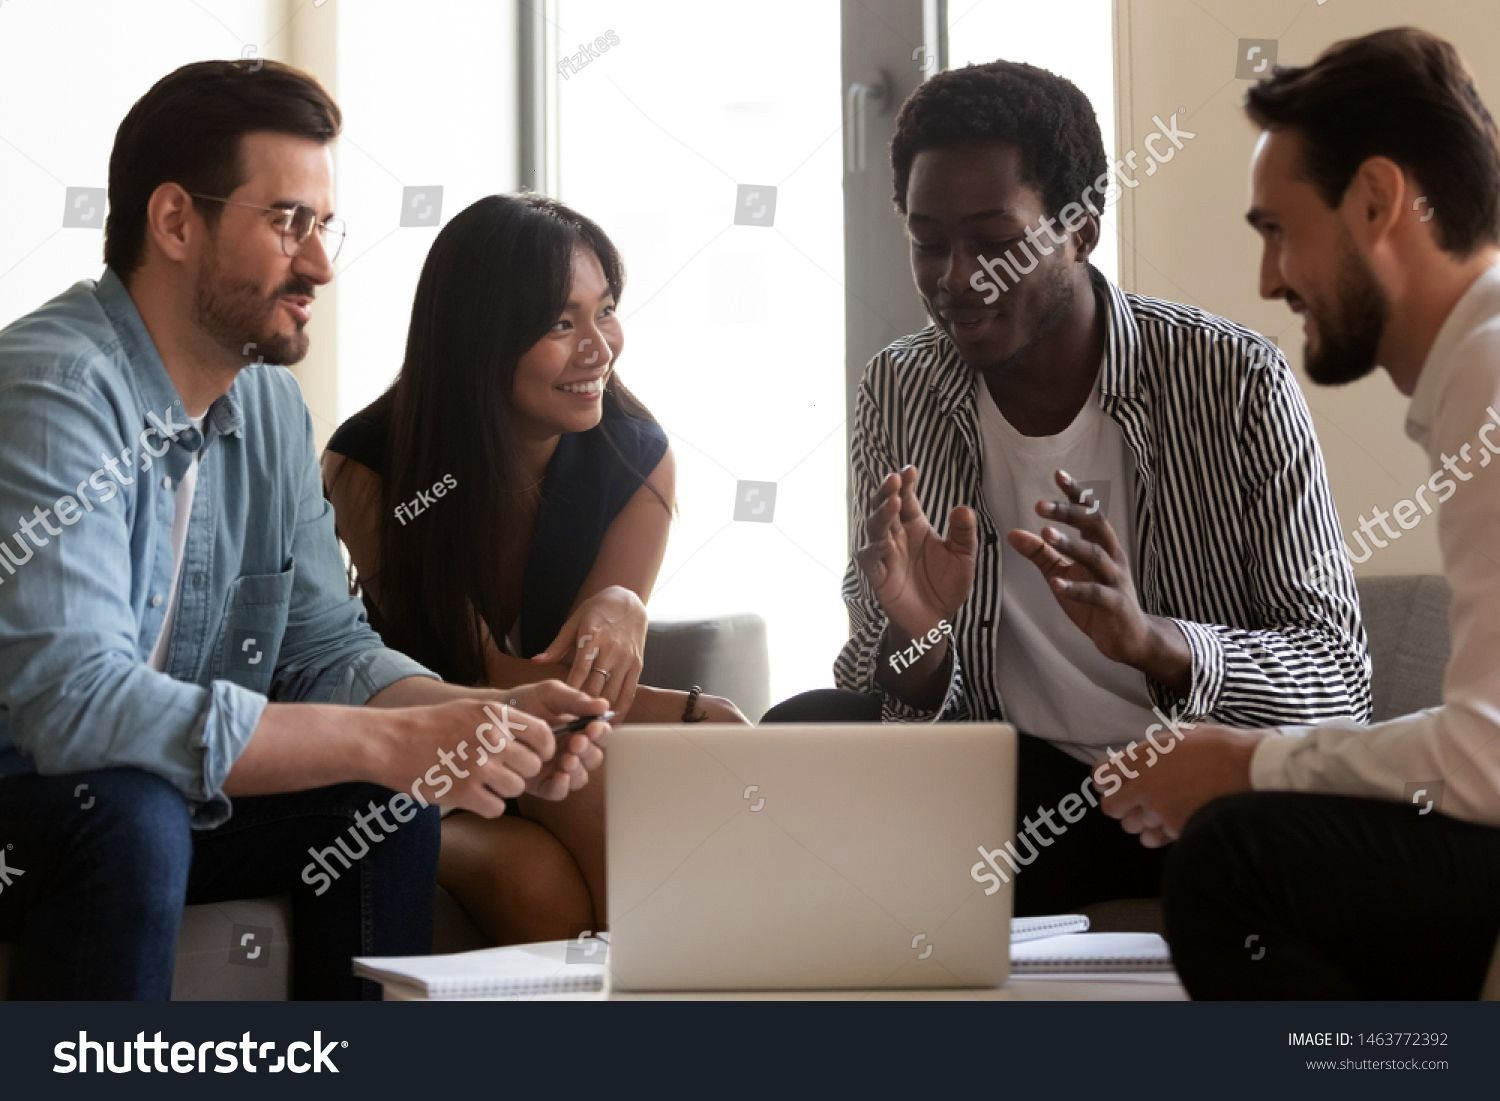 business team listen to african leader mentor coach explain online strategy with laptop diverse workers group brainstorm talking gathered in office work together at teamw...